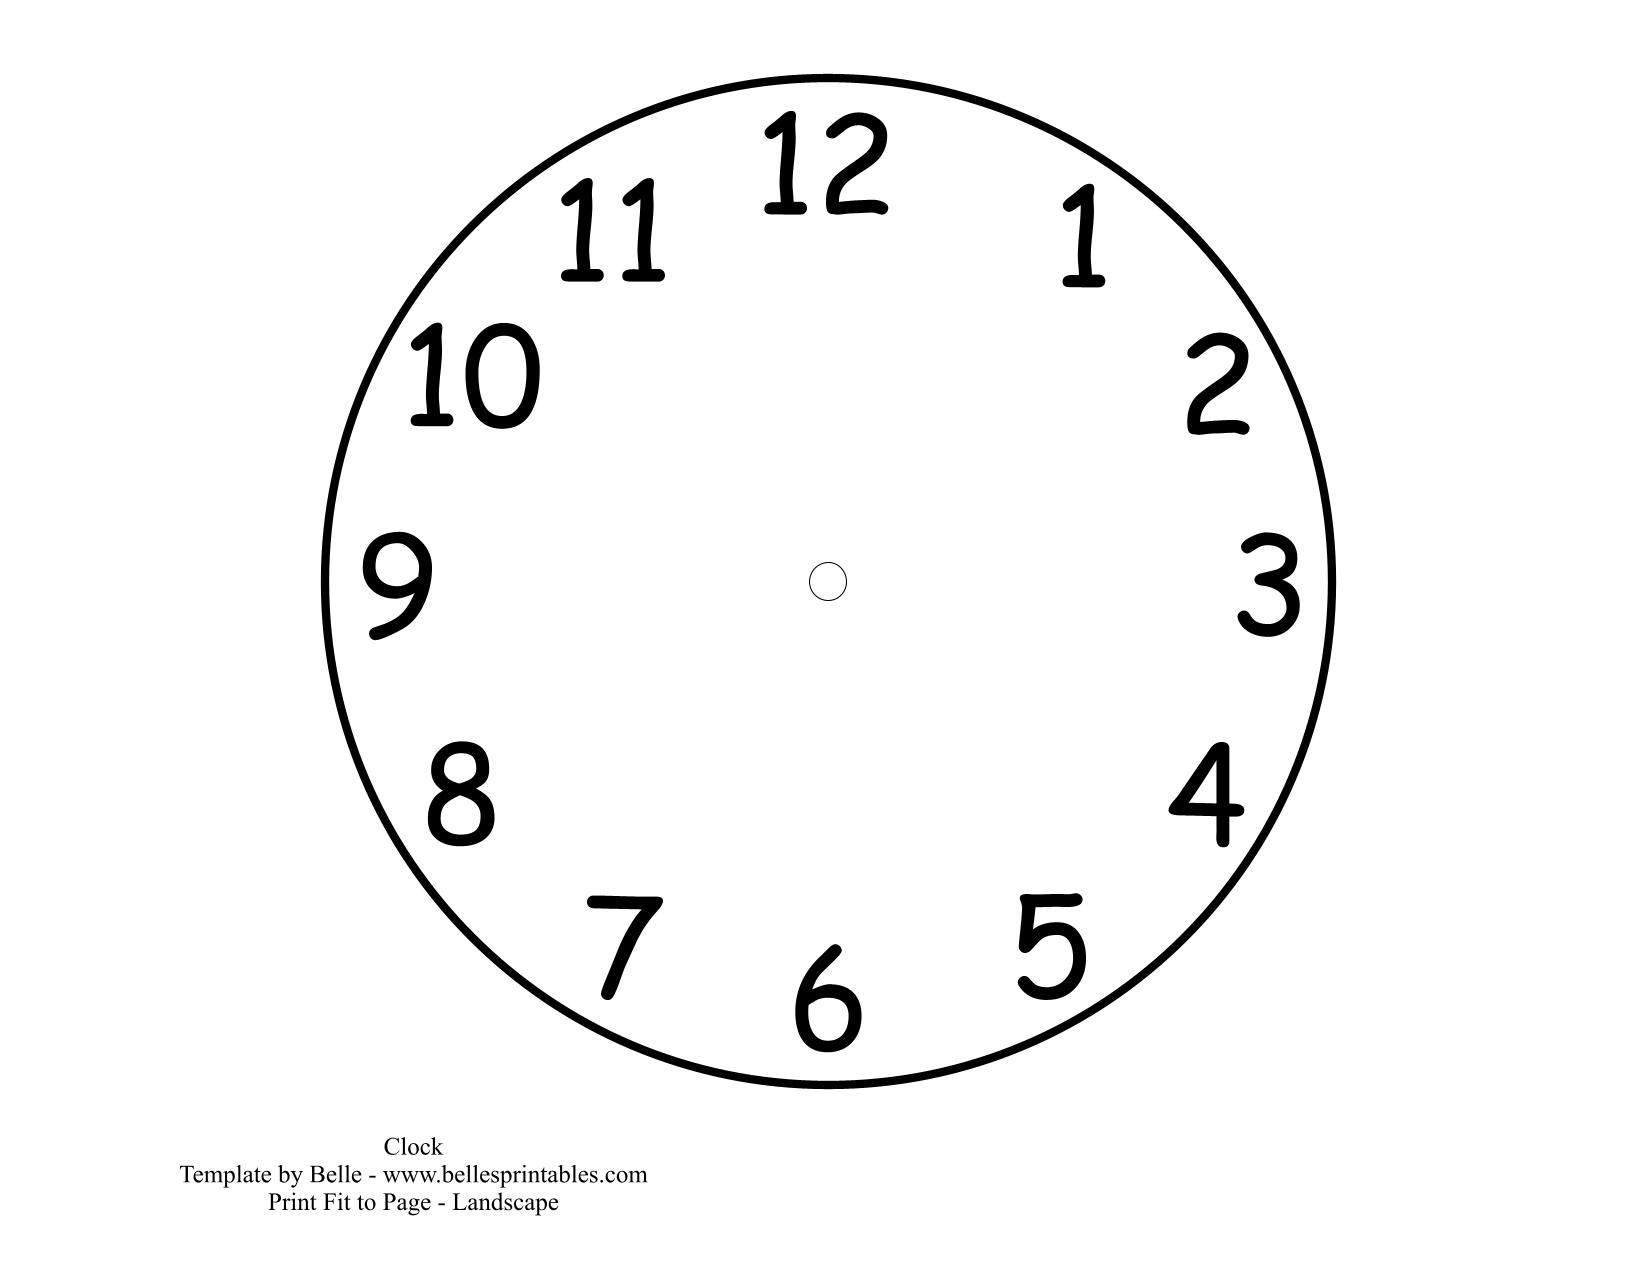 graphic relating to Free Printable Clock Template called Free of charge Printable Clock Confront Template N2 no cost impression